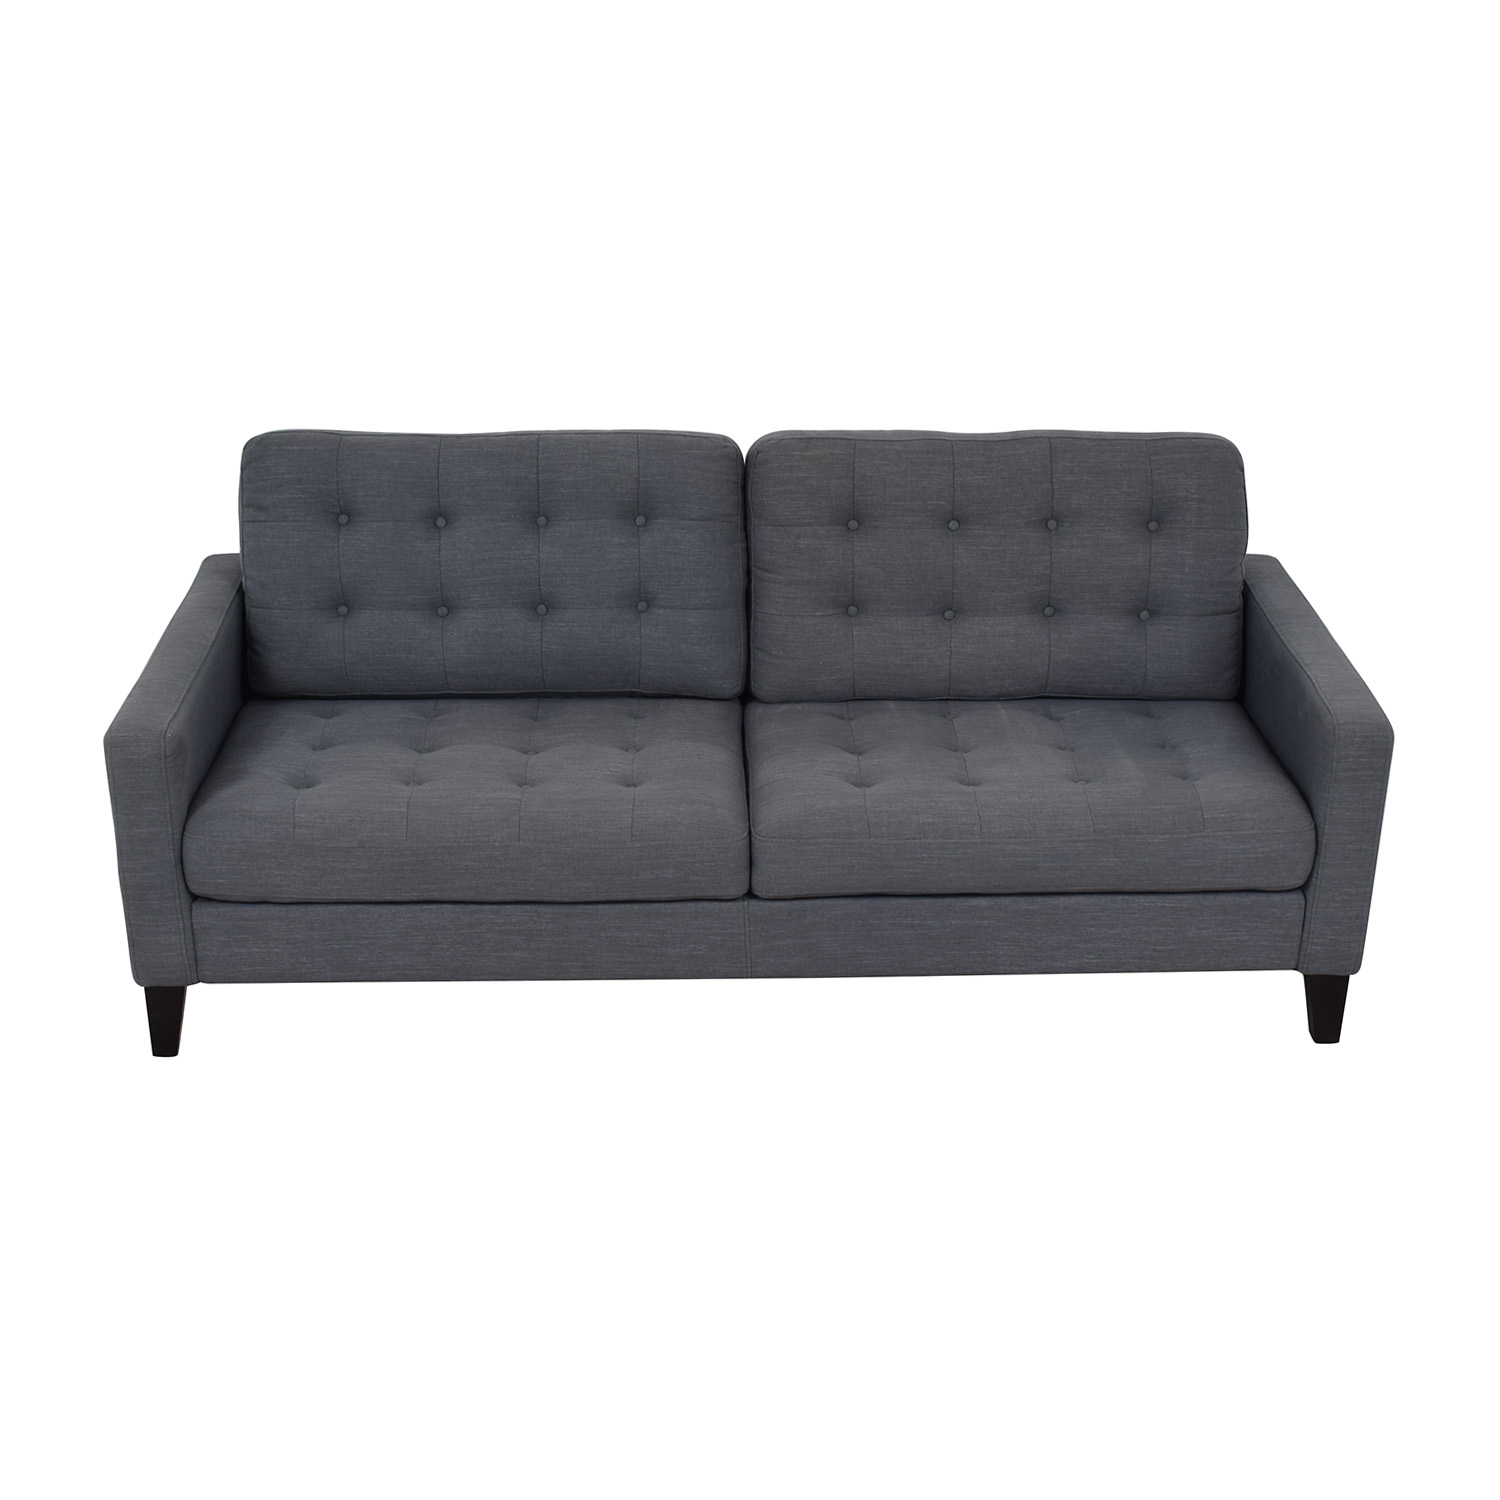 buy Pier One Pier One Gray Tufted Two-Cushion Sofa online